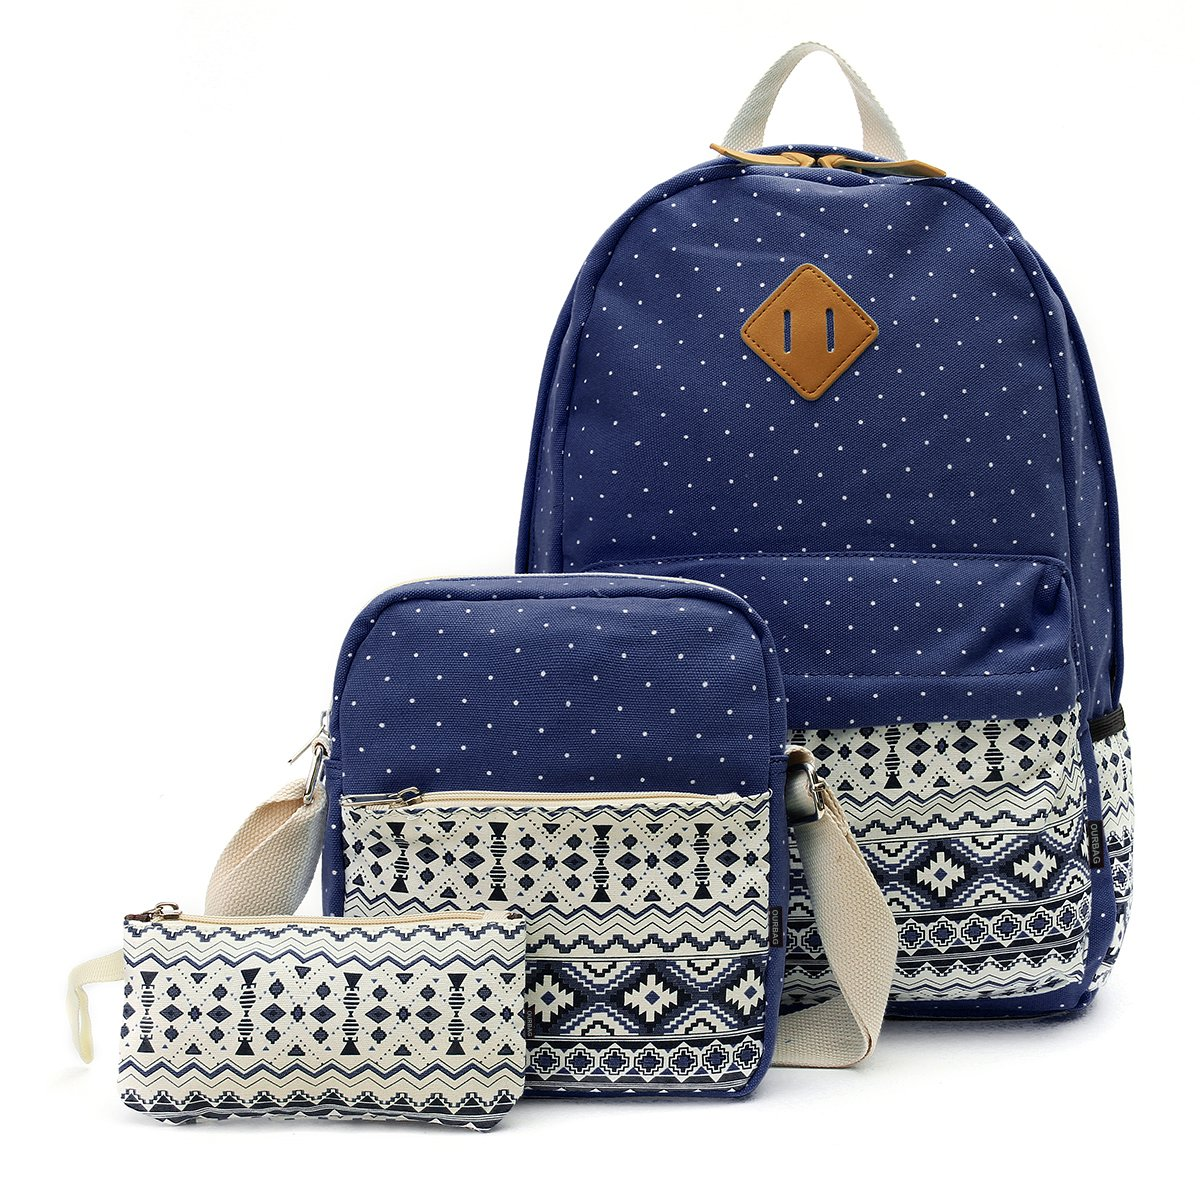 OURBAG Canvas Casual Lightweight Backpack Schoolbag Shoulder Bags Wallet for Women Girls 3PCS Set Navy Blue